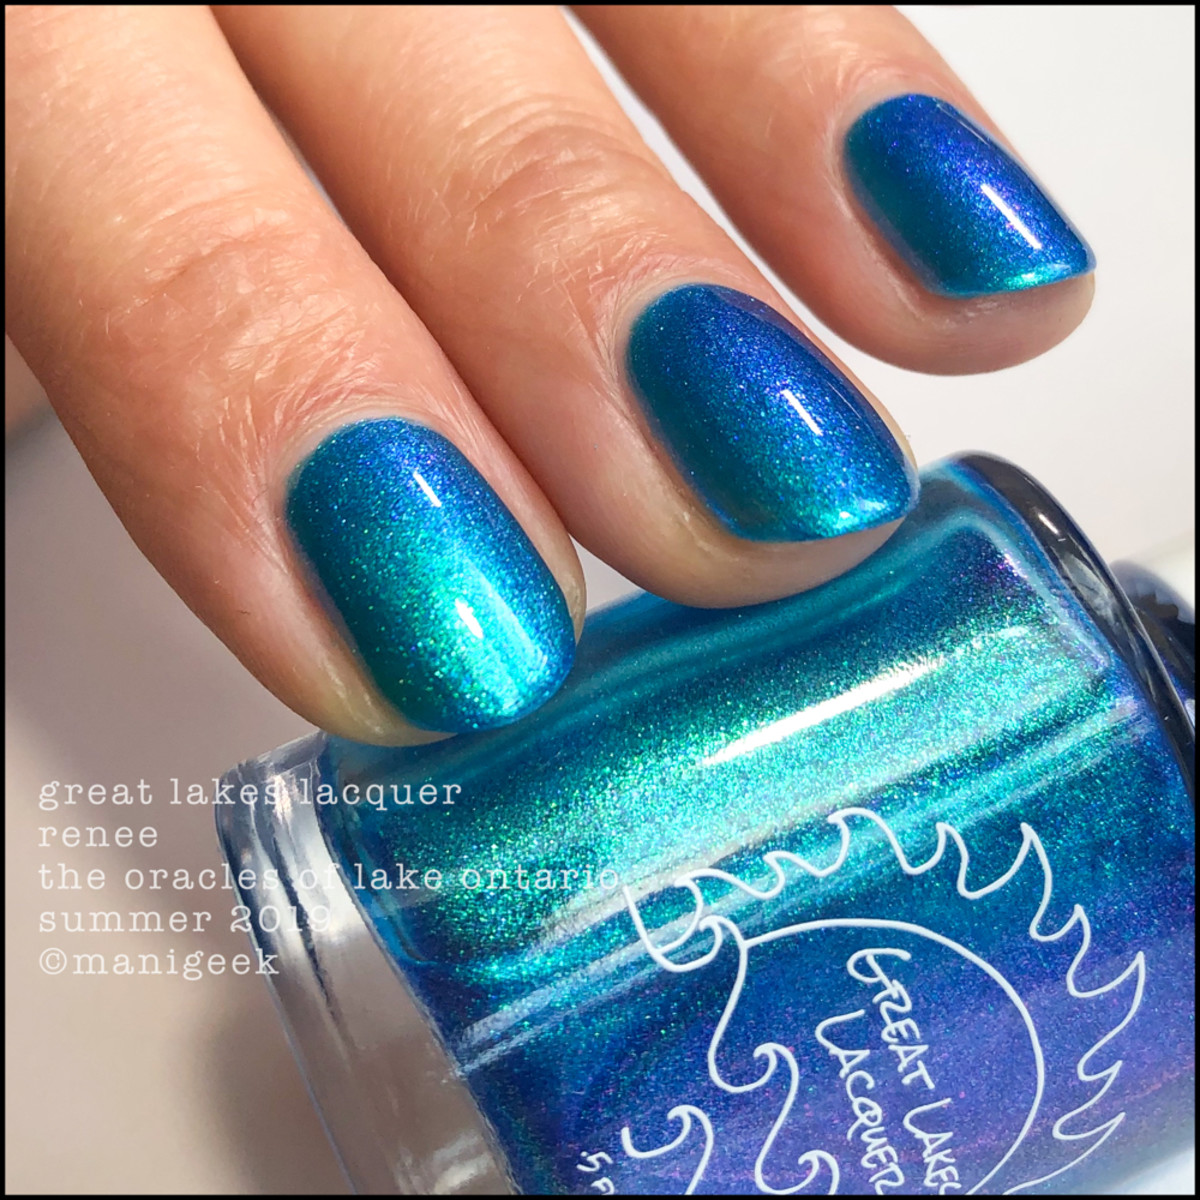 Great Lakes Lacquer Oracles of Lake Ontario Renee - LE IEC 2019 3